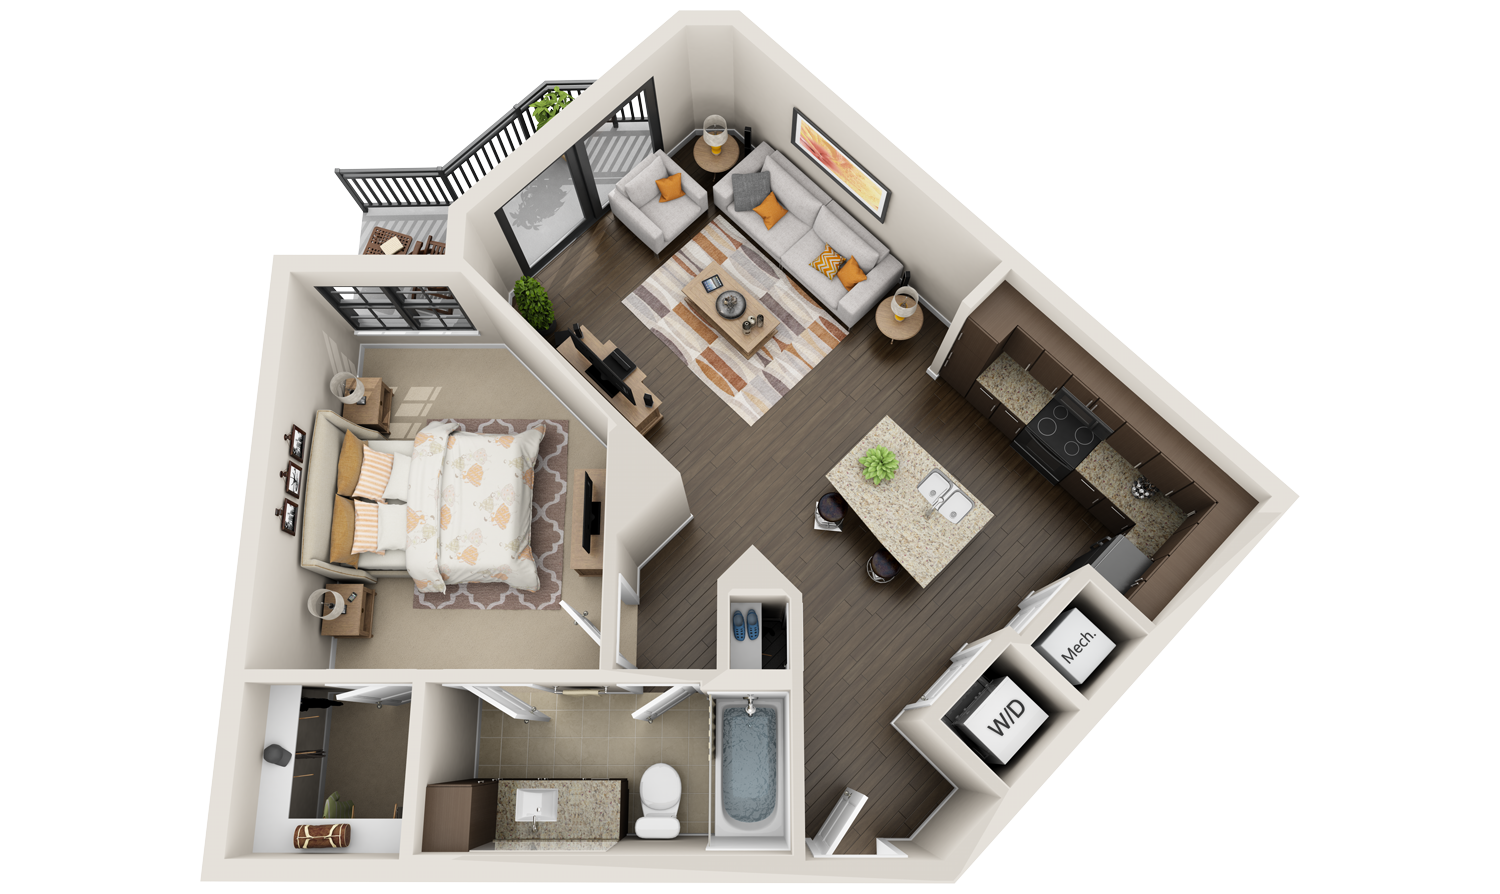 3d floor plans for apartments that look real for Apartment 3d